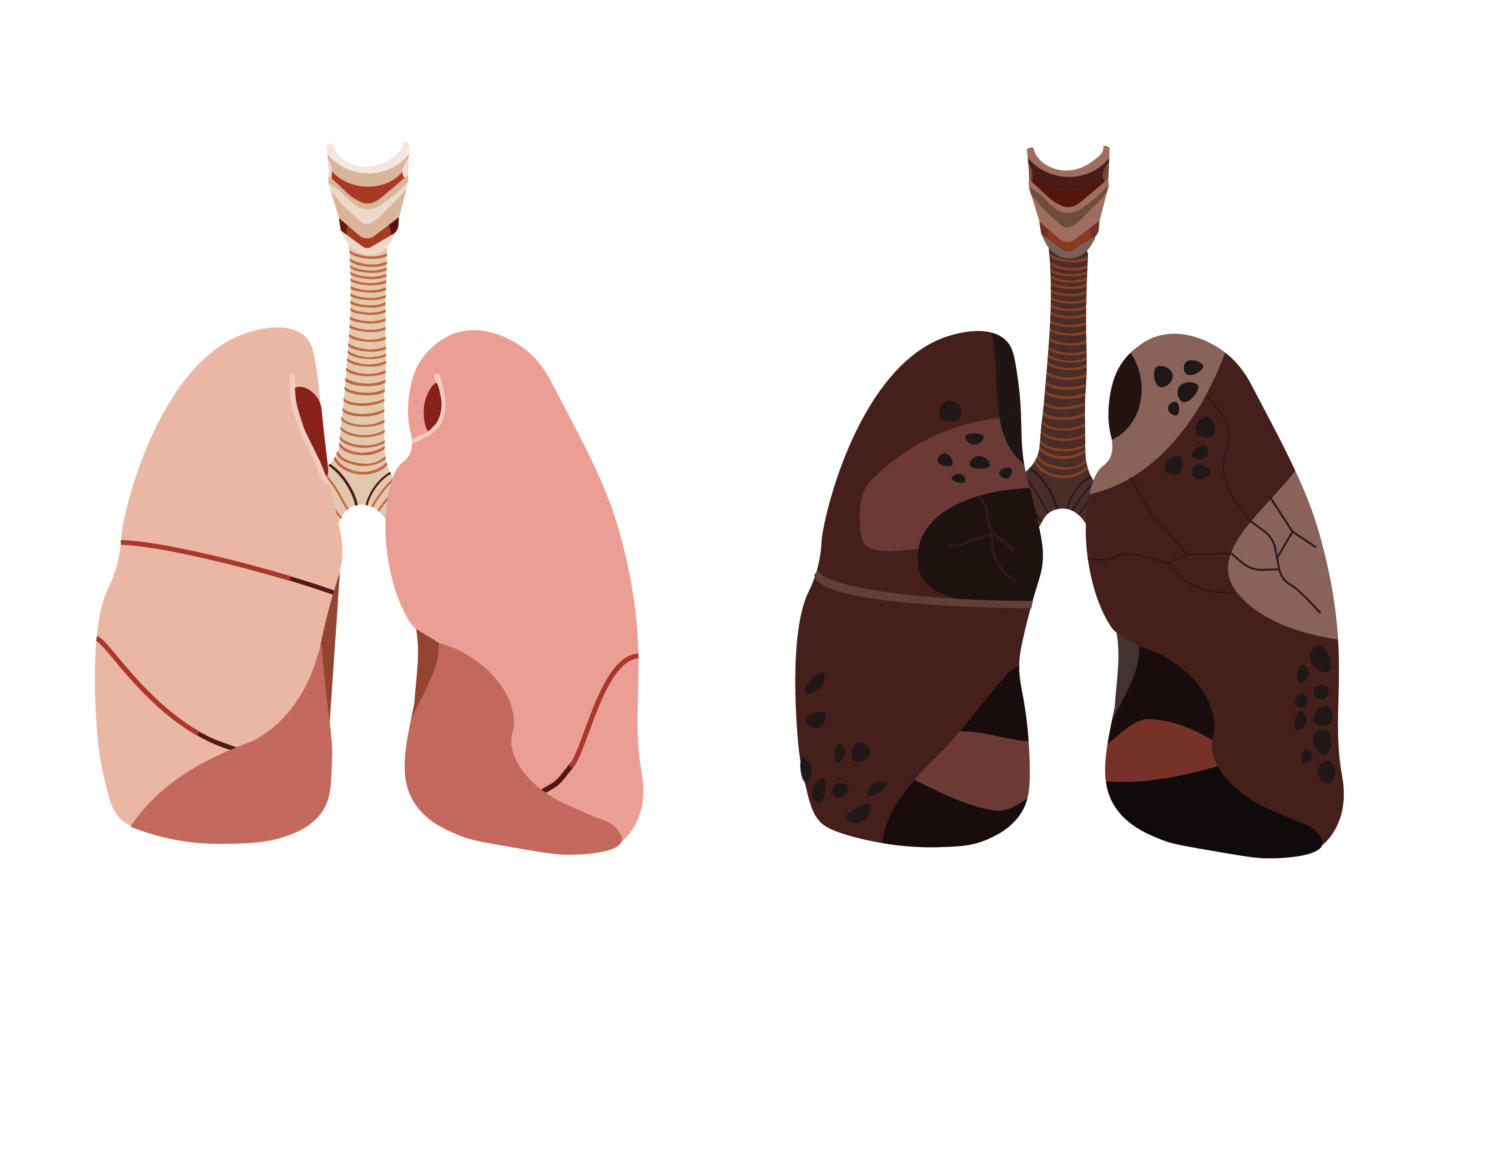 The lung shown on the right reveals the harmful effects of vaping.